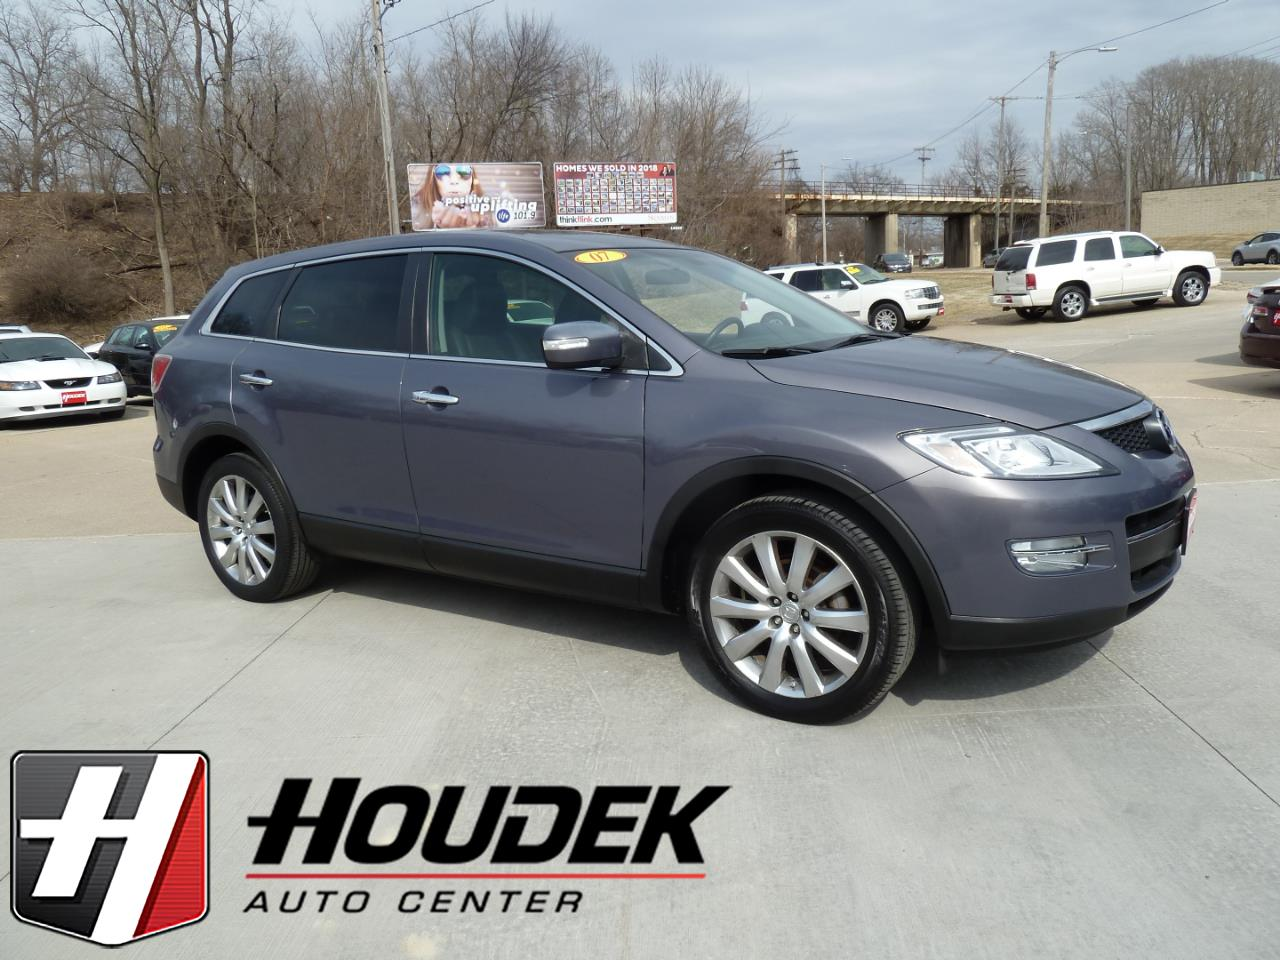 2007 Mazda CX-9 Grand Touring AWD